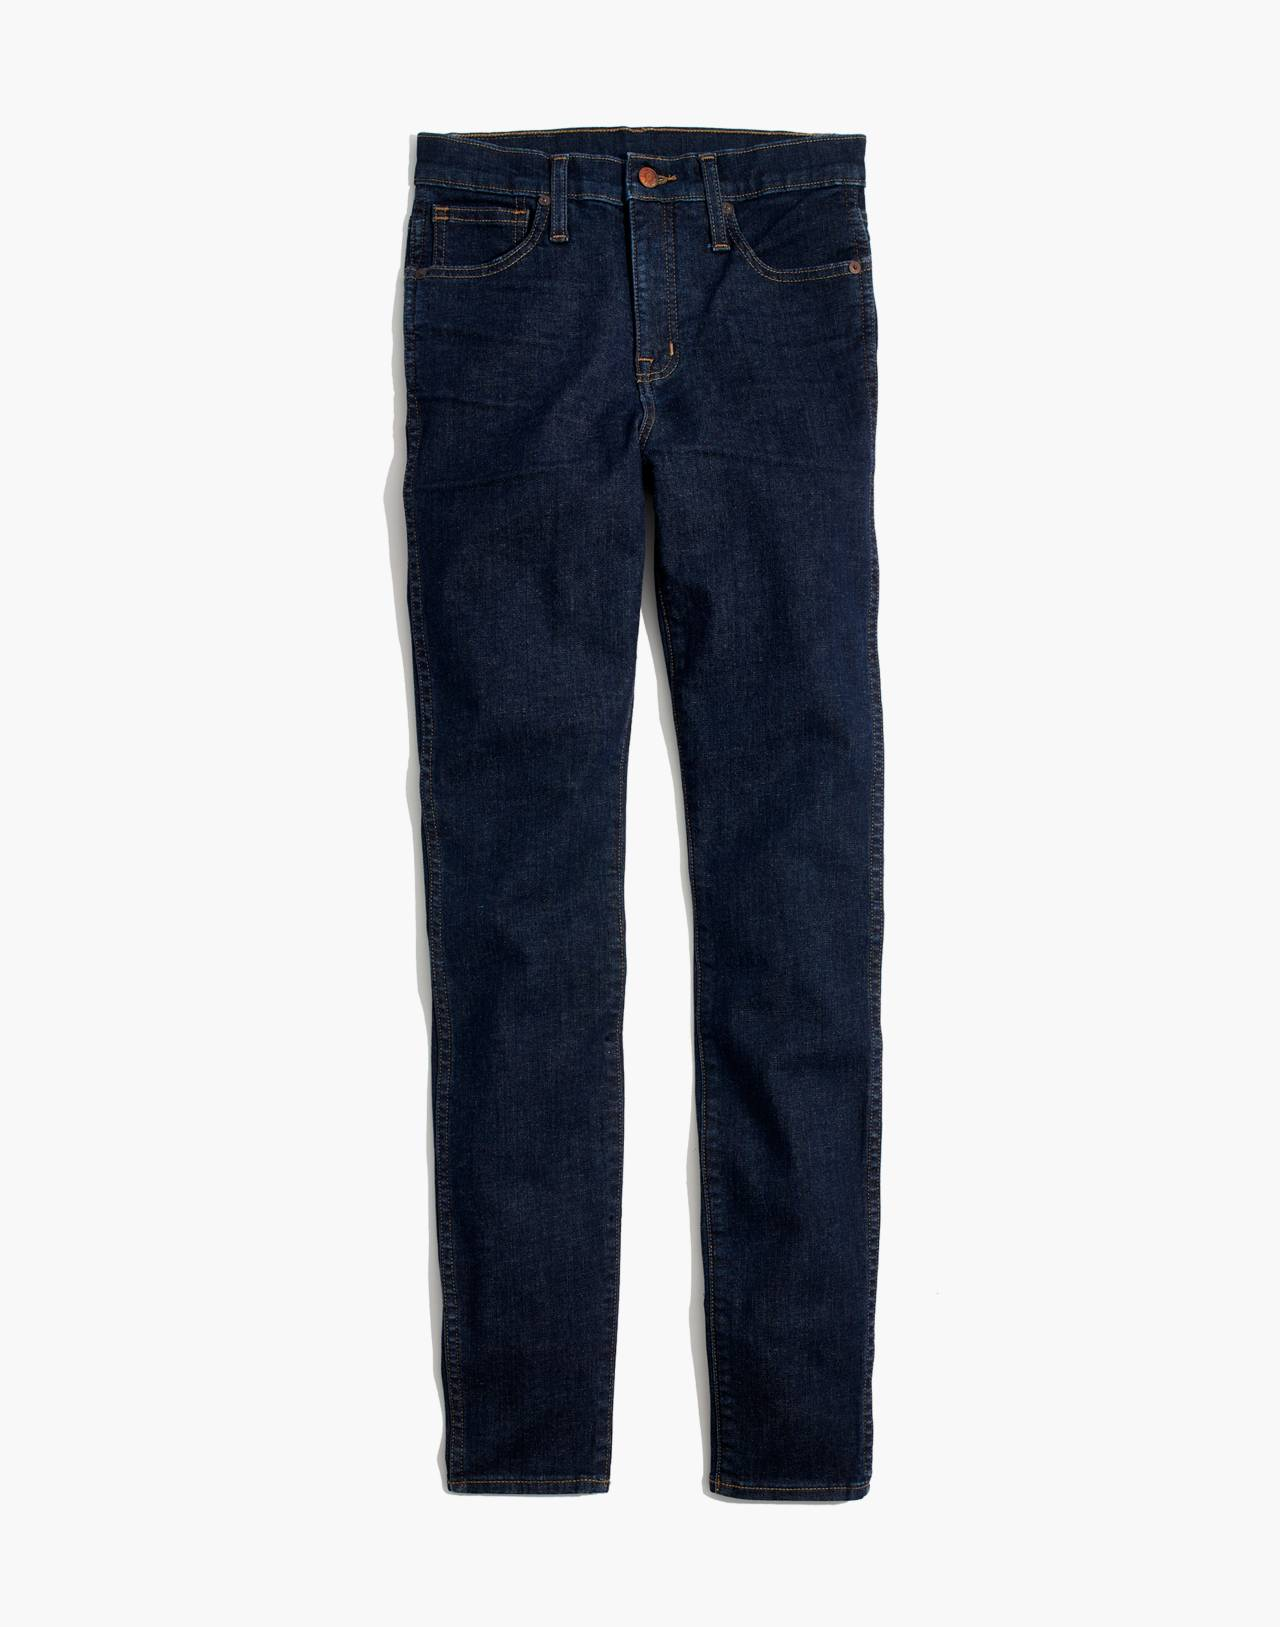 "Petite 10"" High-Rise Skinny Jeans in Lucille Wash in lucille wash image 4"